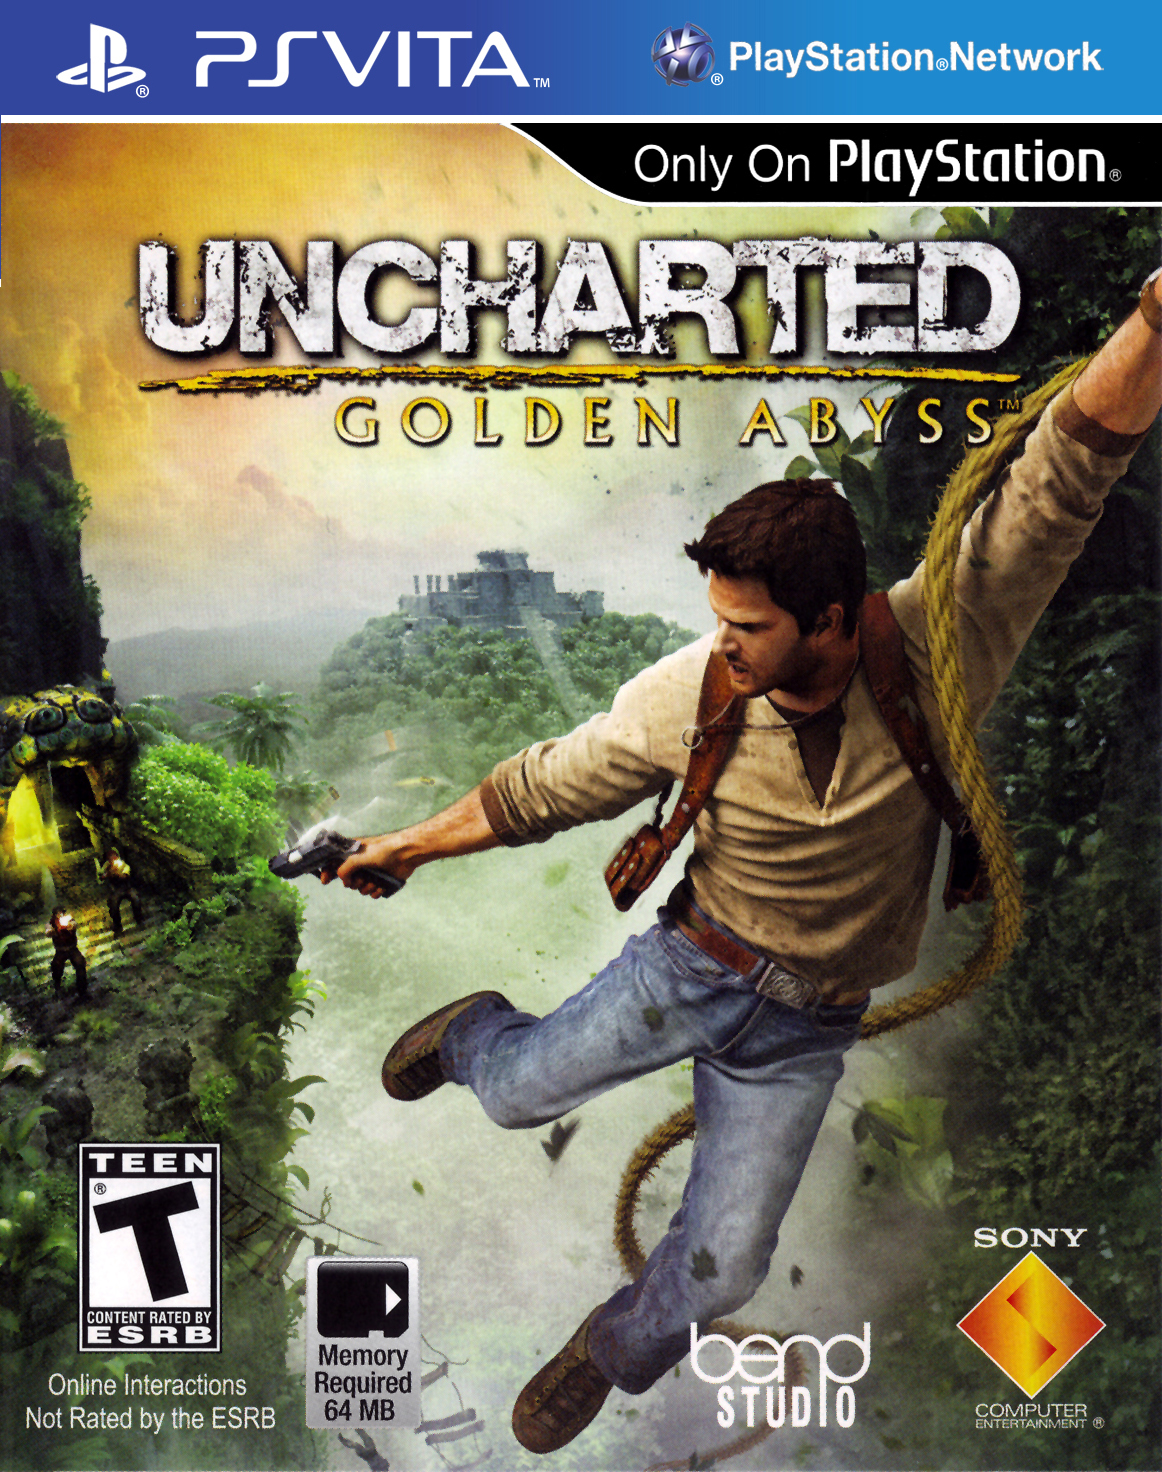 Uncharted Golden Abyss/PS Vita